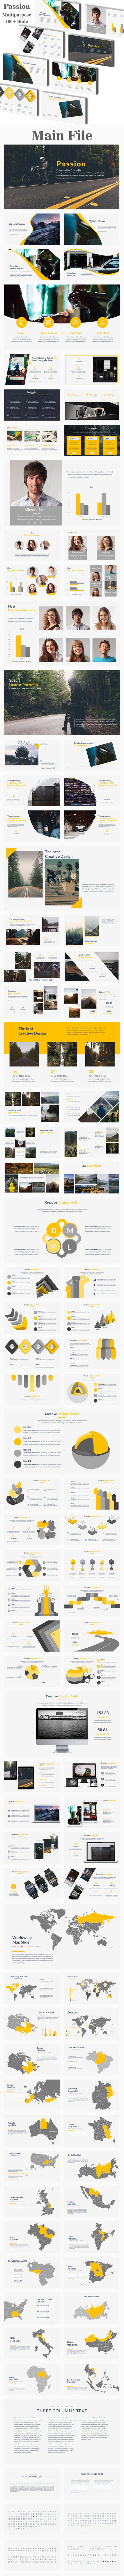 GraphicRiver Passion Multipurpose PowerPoint Template 20478038